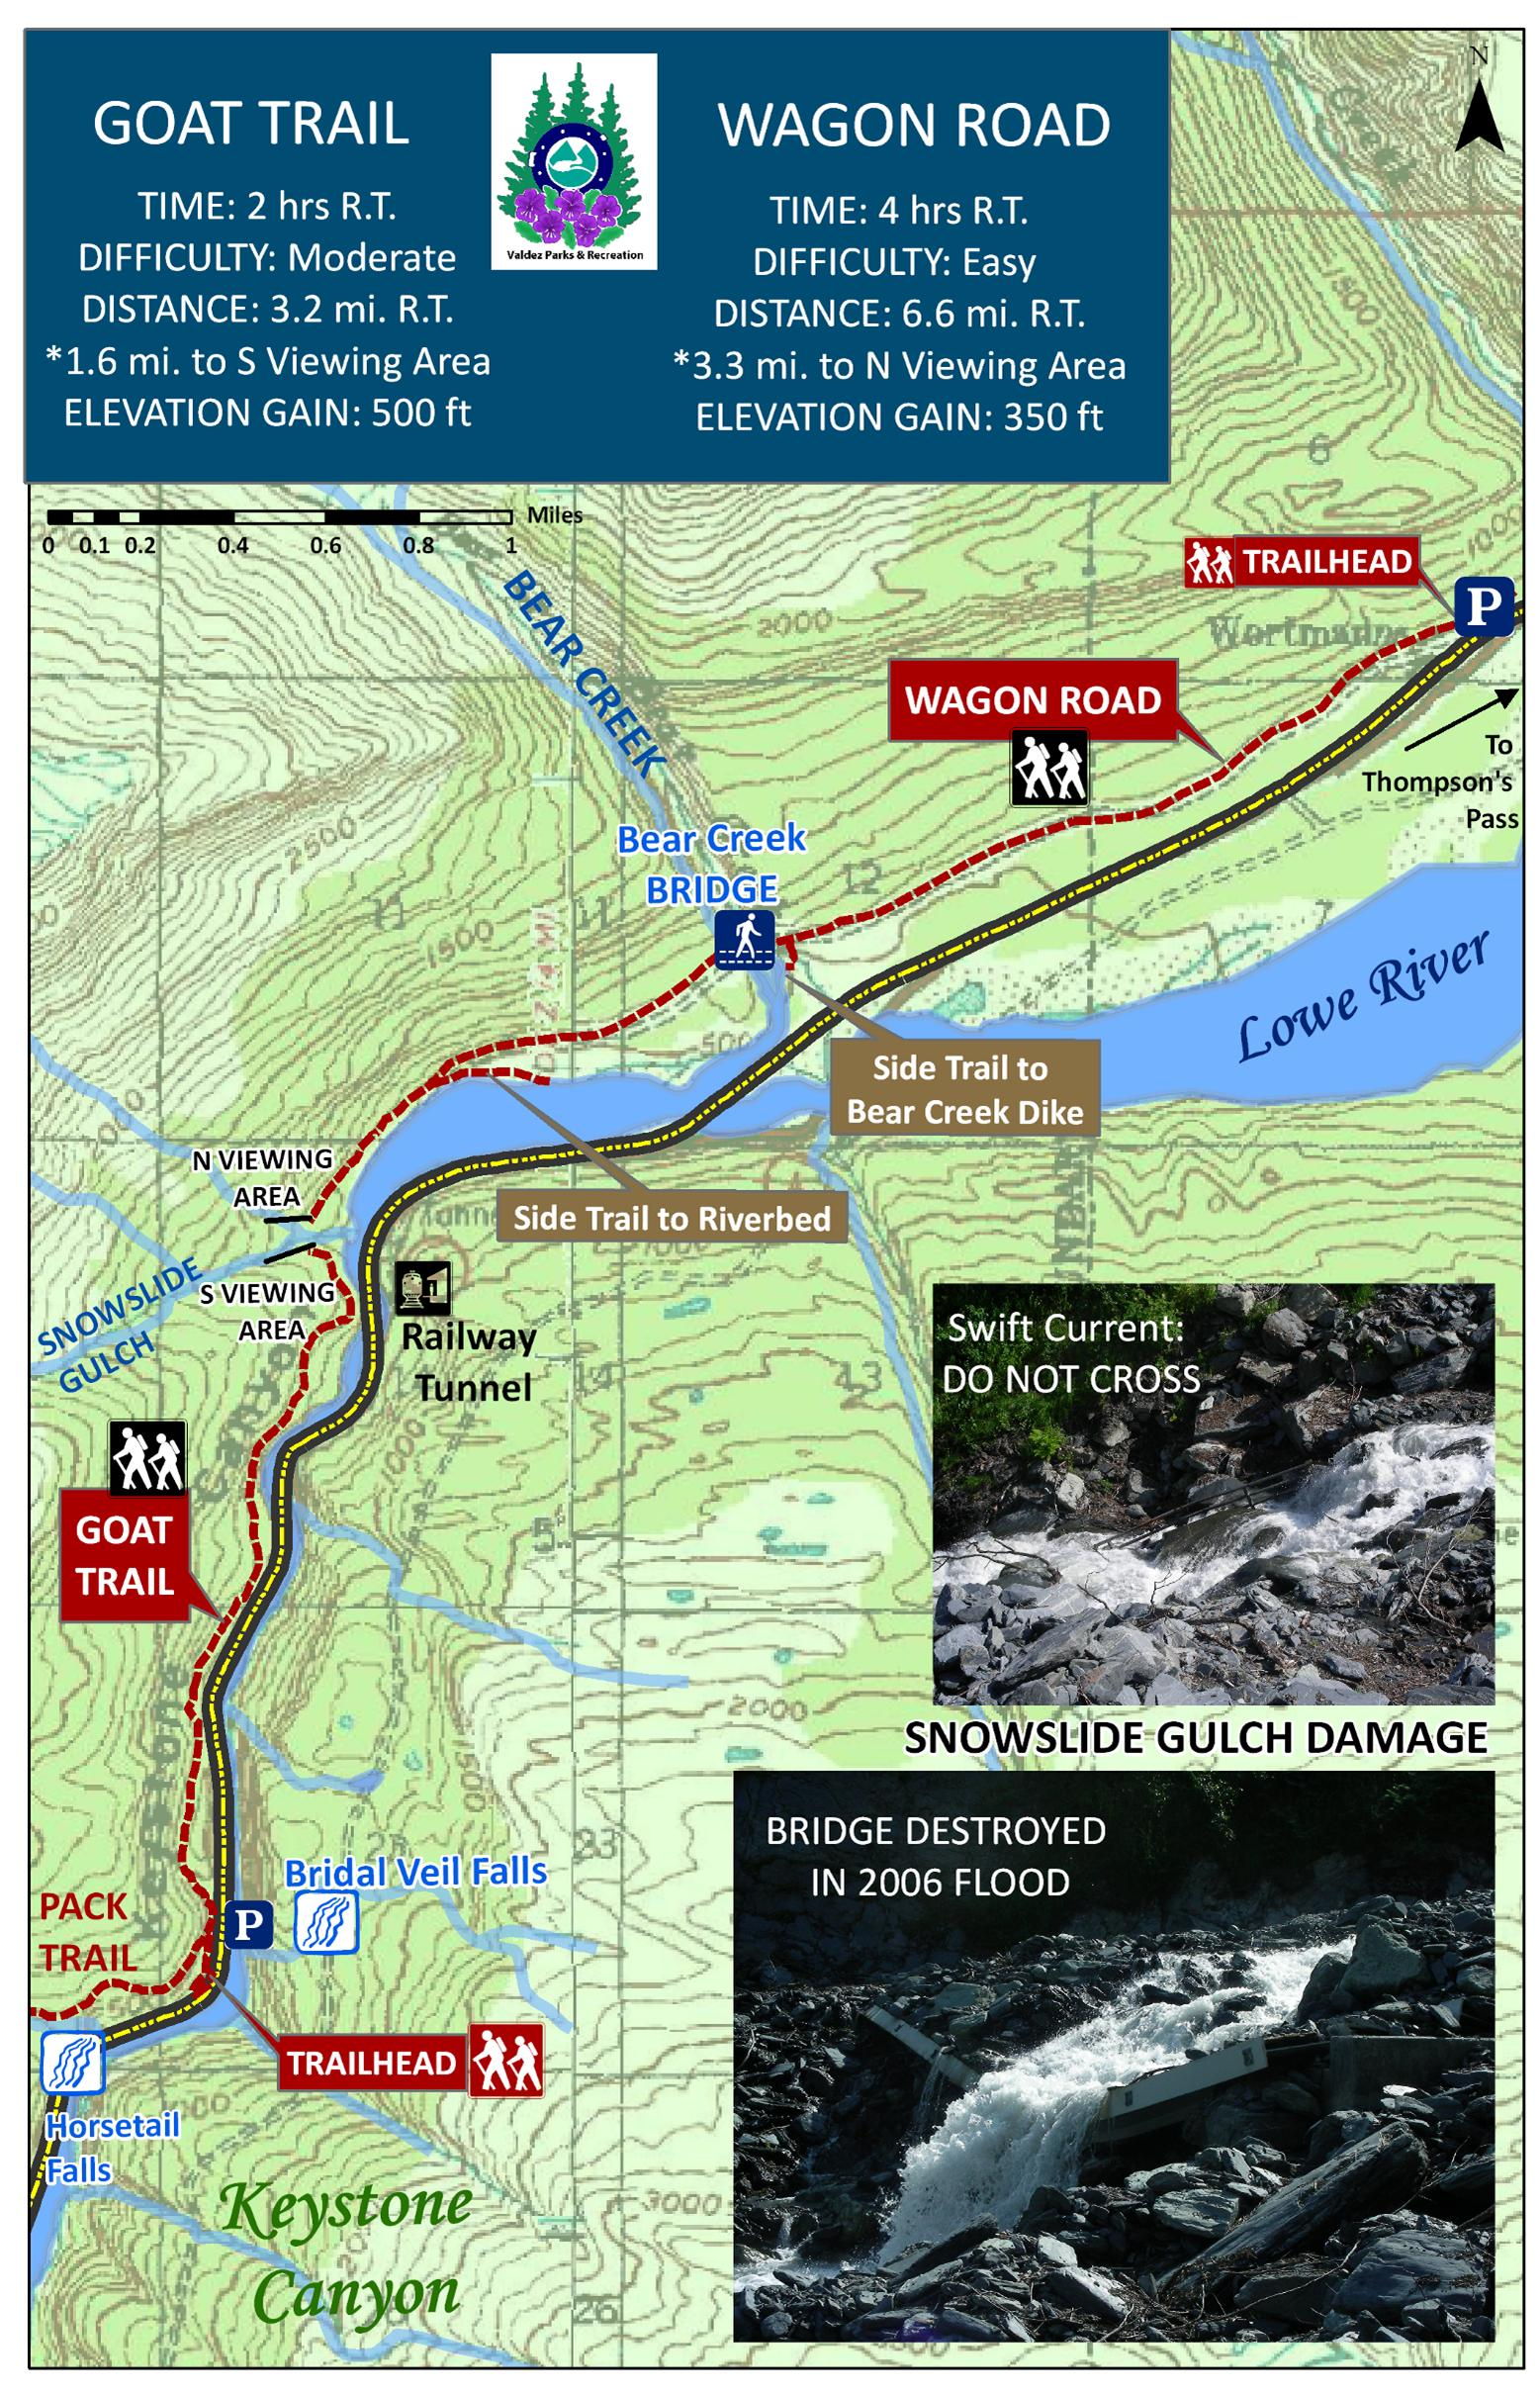 Goat Trail - Wagon Road Map